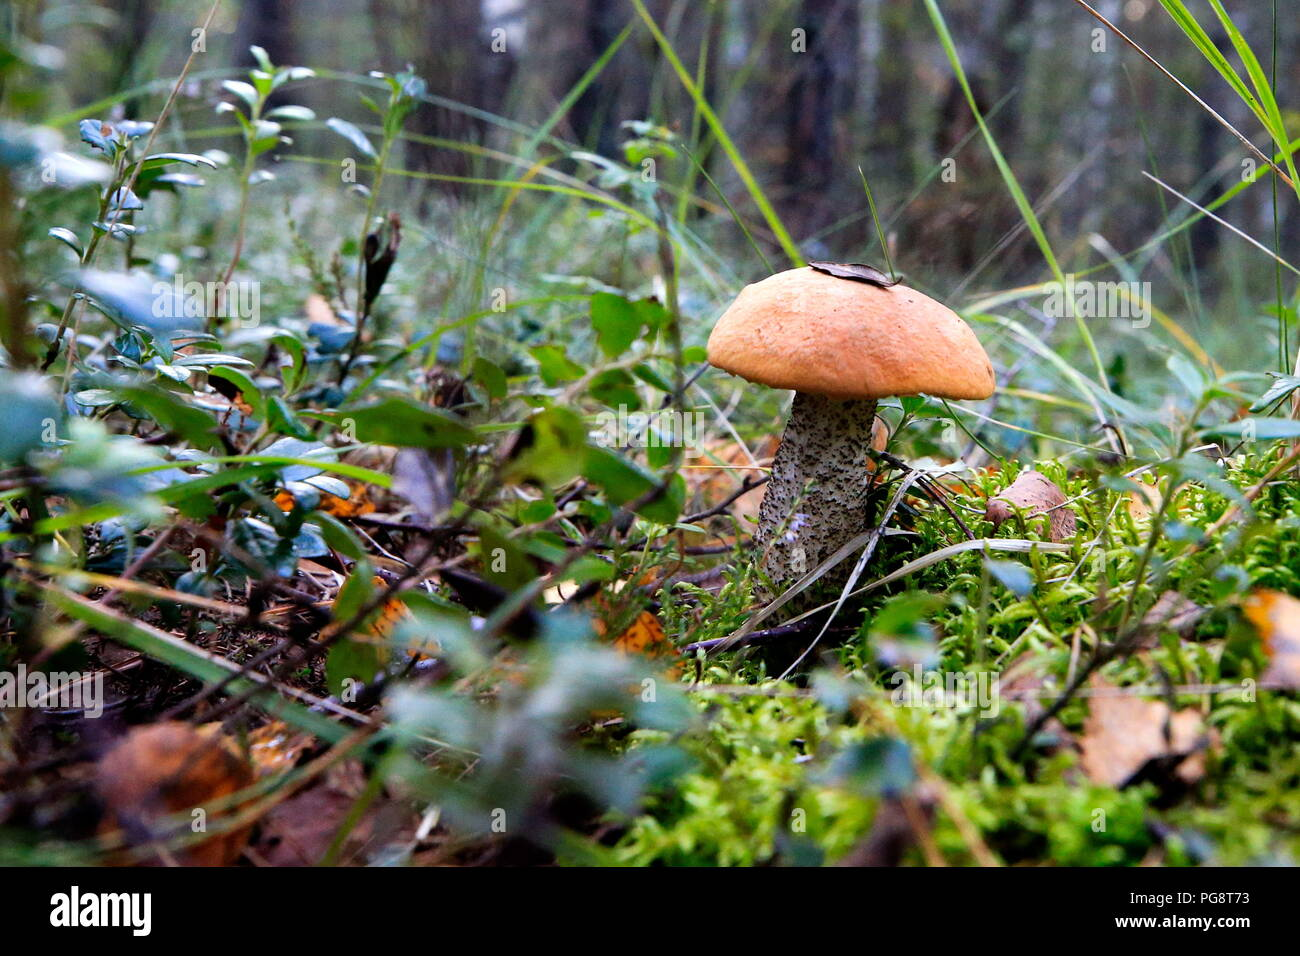 Mushroom places in the Yaroslavl region. Are there mushrooms in the Yaroslavl region